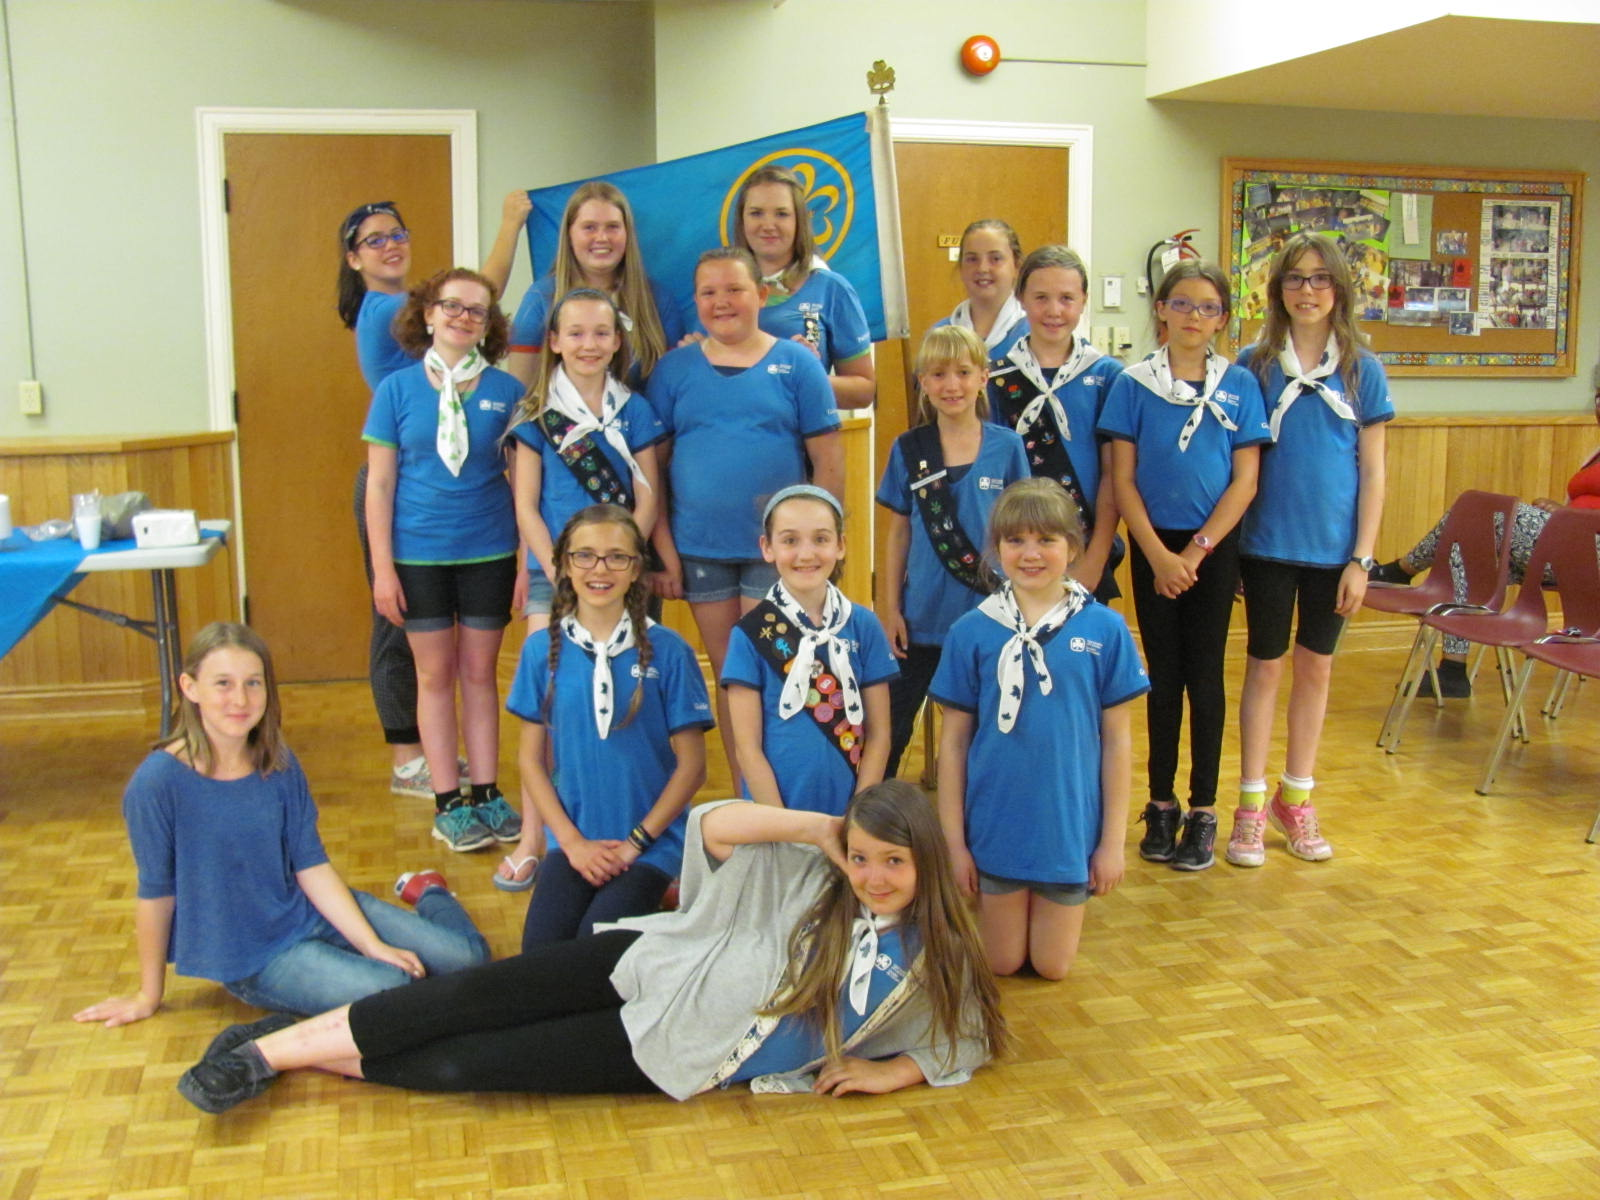 The bLog Book of the Caledonia Girl Guides, Pathfinders